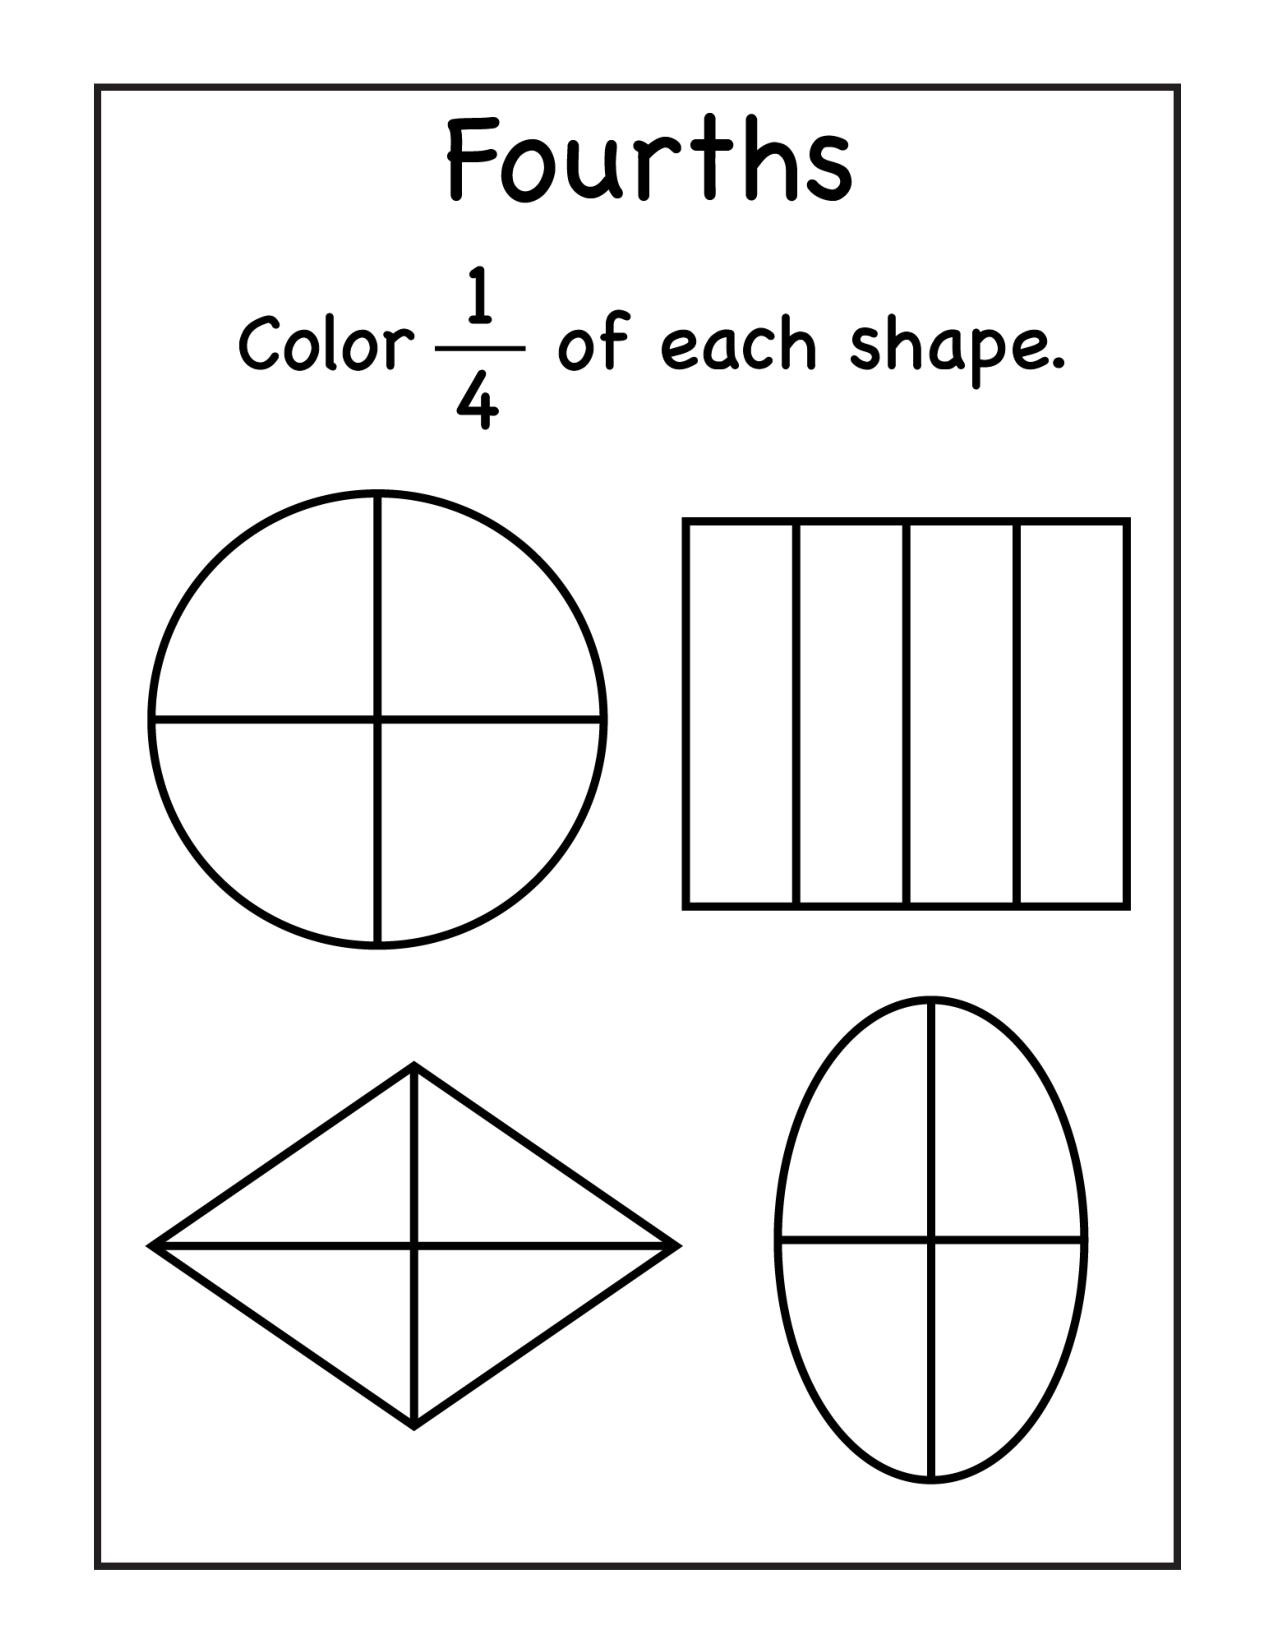 Fractions Worksheets First Grade 1st Grade Archives Page 2 Of 13